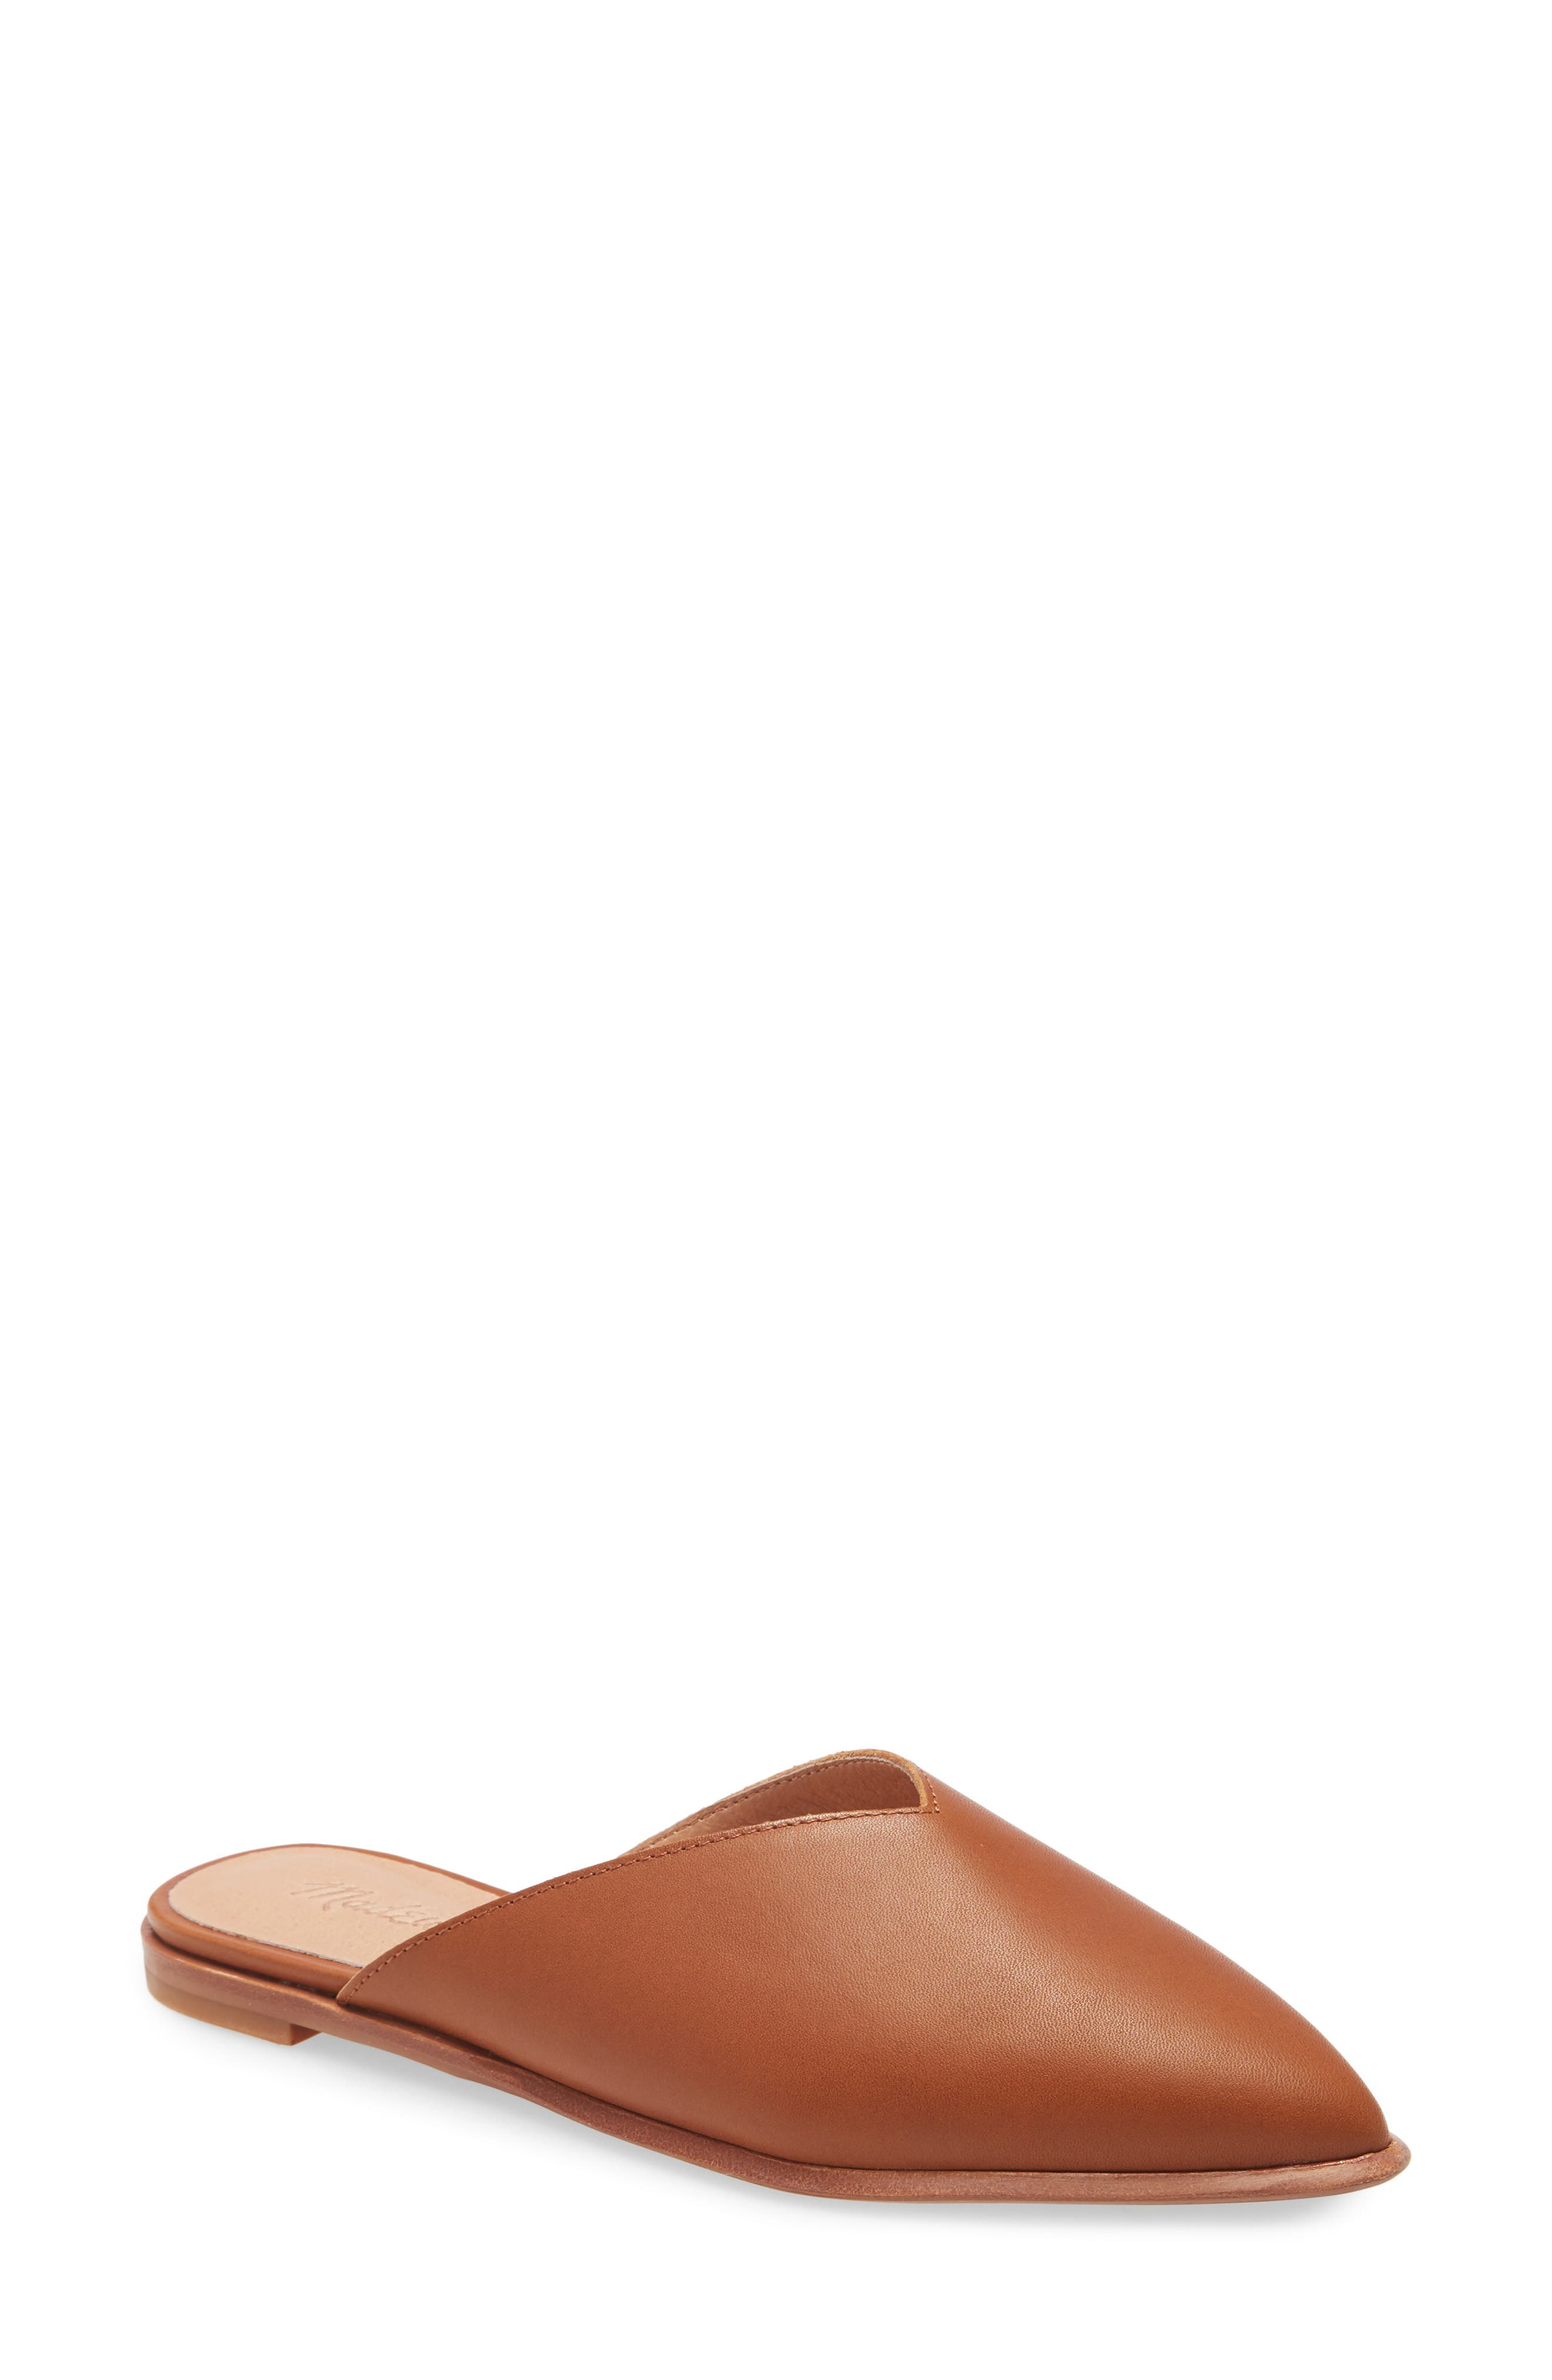 Made of buttery leather, these sleek pointy-toe mules are so comfy they\\\'re like stealth slippers. And, cushiness alert: Madewell\\\'s MWL Cloudlift Lite padding feels like walking on a.well, you know. Style Name: Madewell The Emilia Mule (Women). Style Number: 6042493. Available in stores.